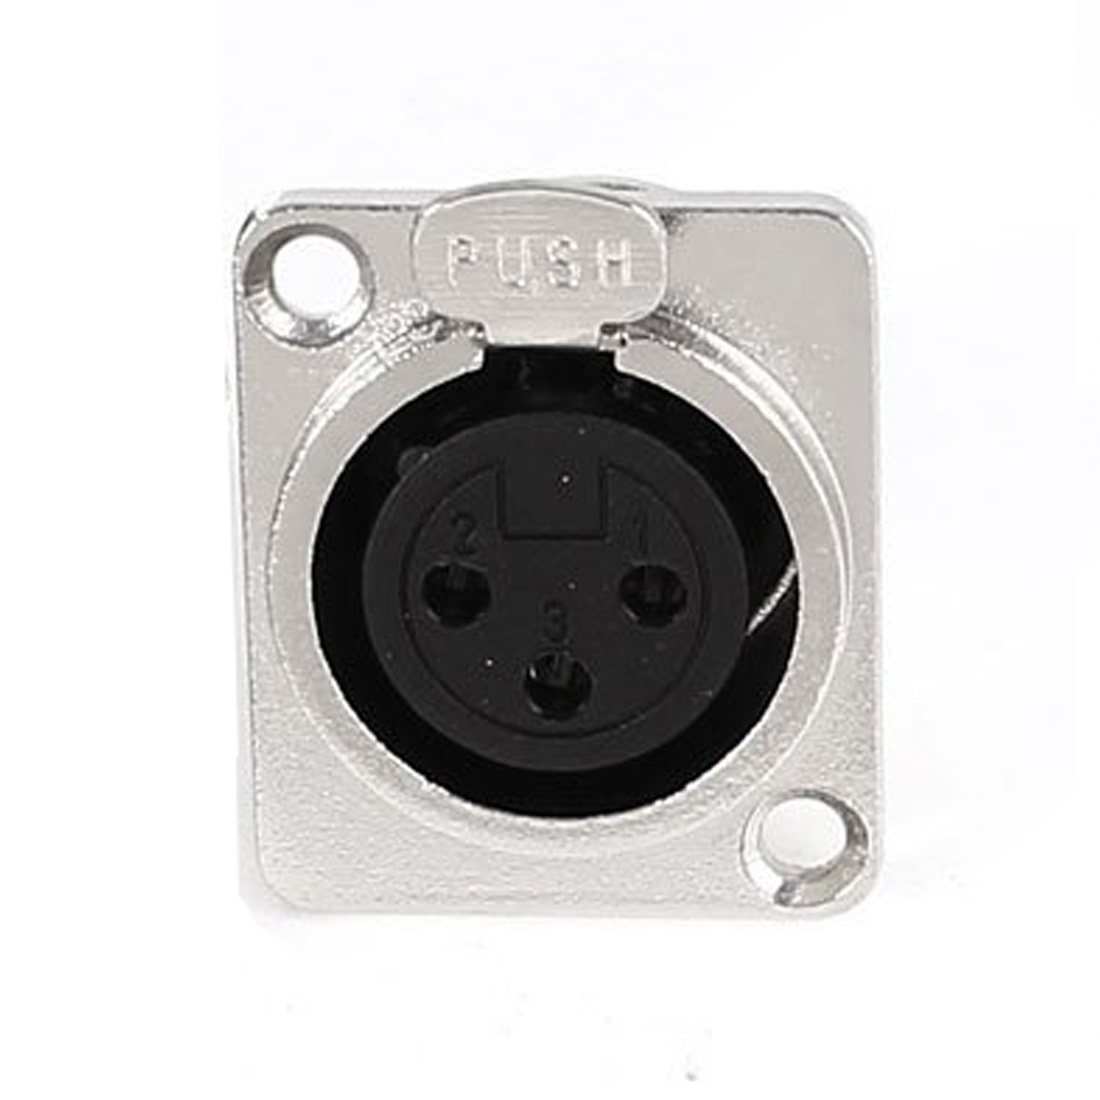 5 pcs XLR 3 pin female chassis panel mount socket silver black hongyang electrolytic capacitors black silver 190 pcs